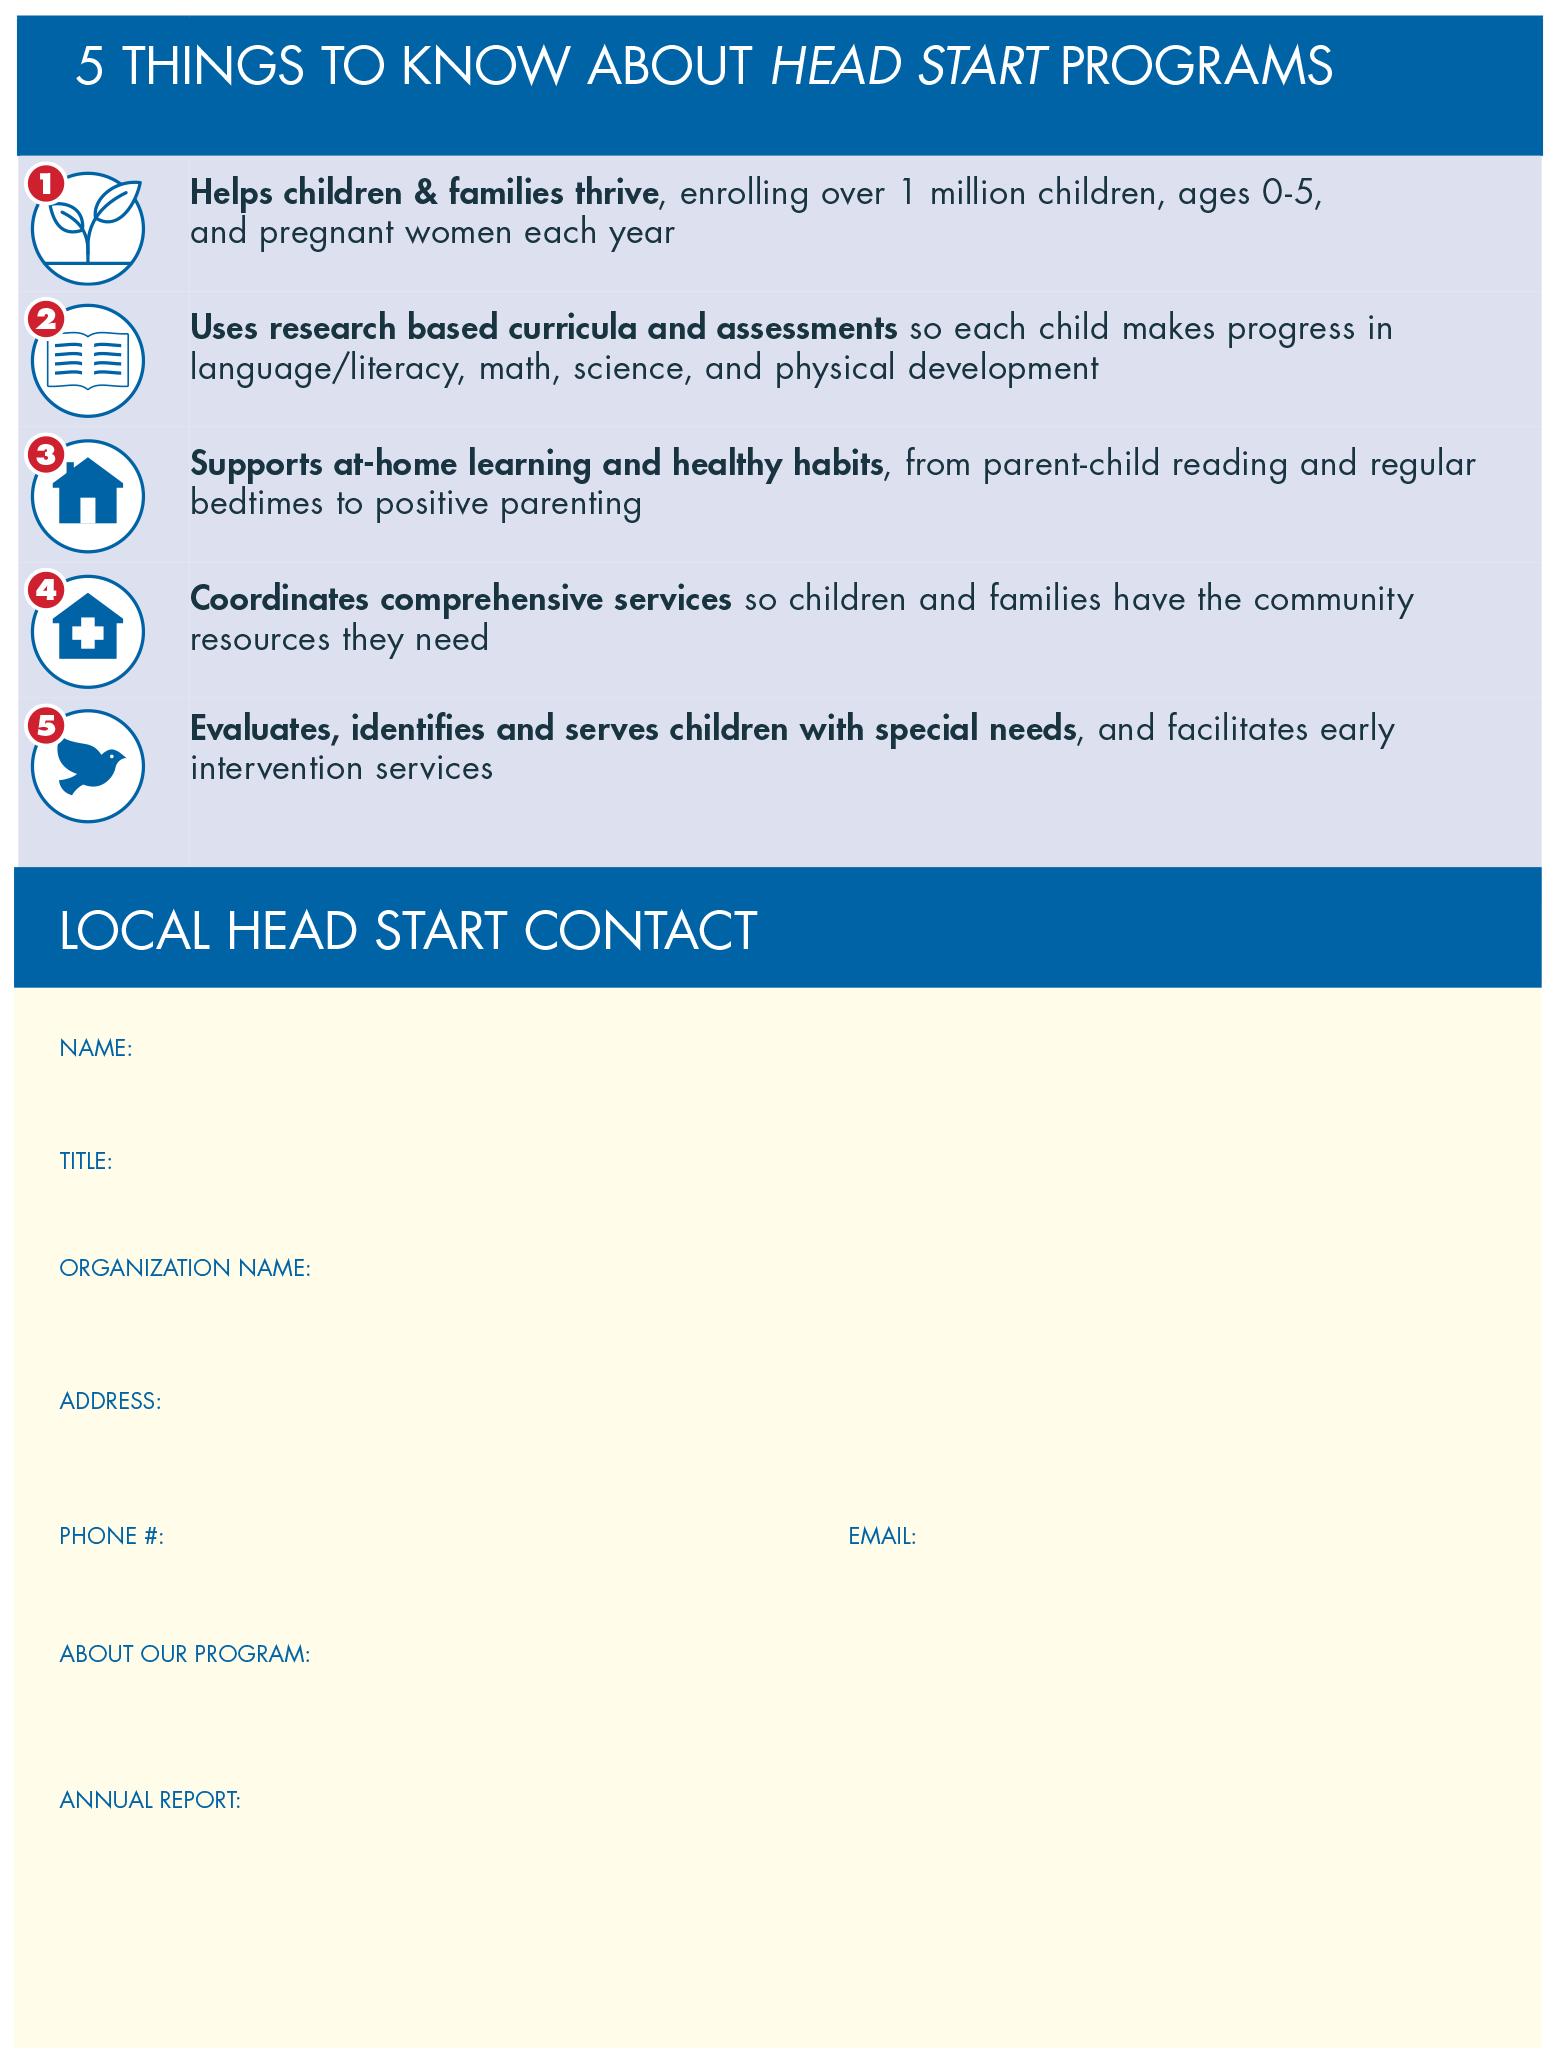 Infographic on Head Start Prepares Children for Your Classroom